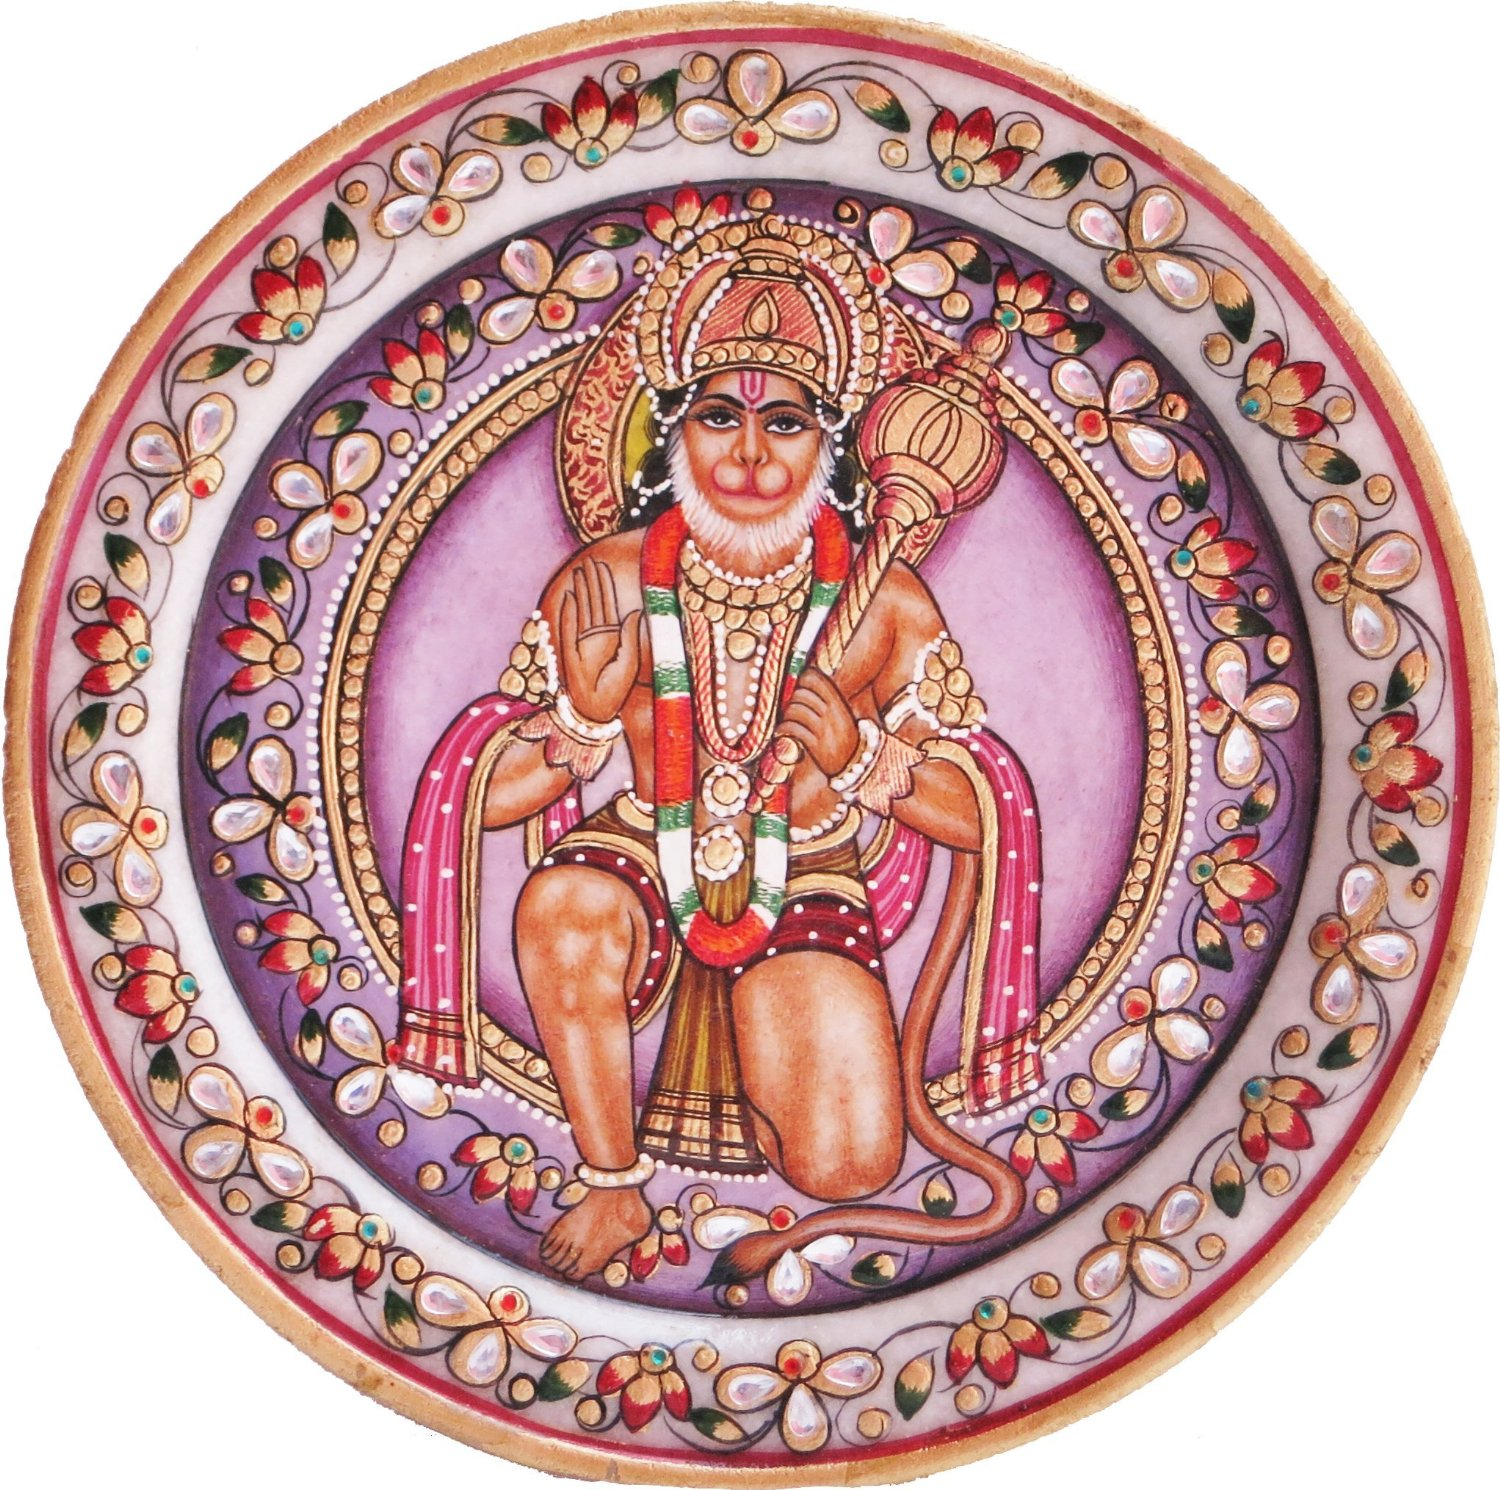 Lord Hanuman with his weapon Gadha and giving Blessings, A Hand Made miniature Painting on Round Marble Plate, Must for Worship, Gift and Religious purpose